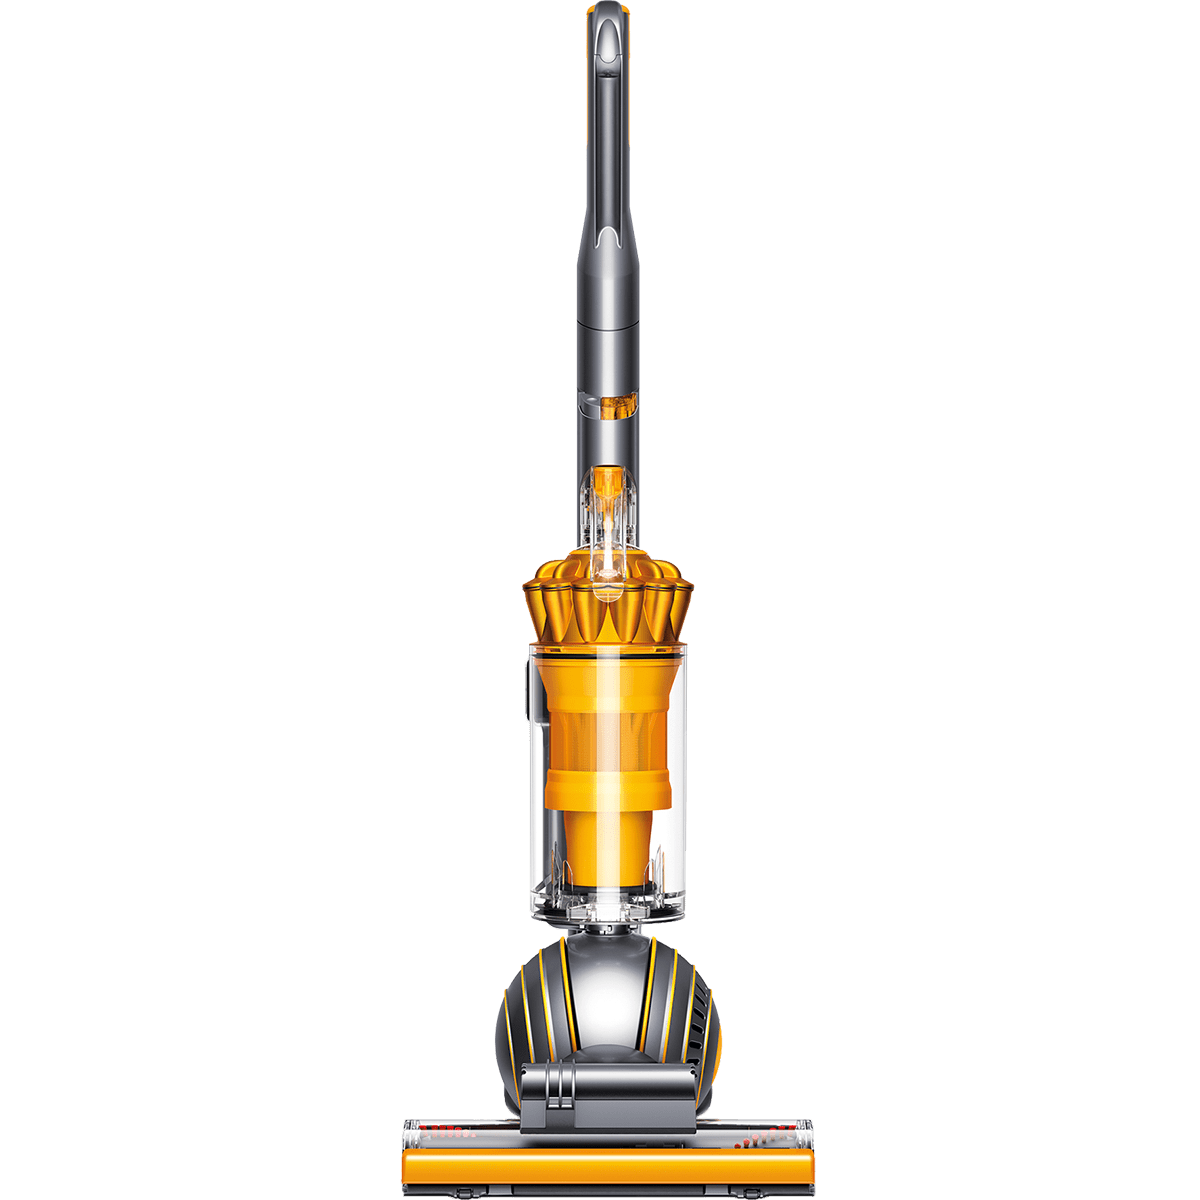 dyson ball multifloor 2 upright vacuum cleaner sylvane. Black Bedroom Furniture Sets. Home Design Ideas